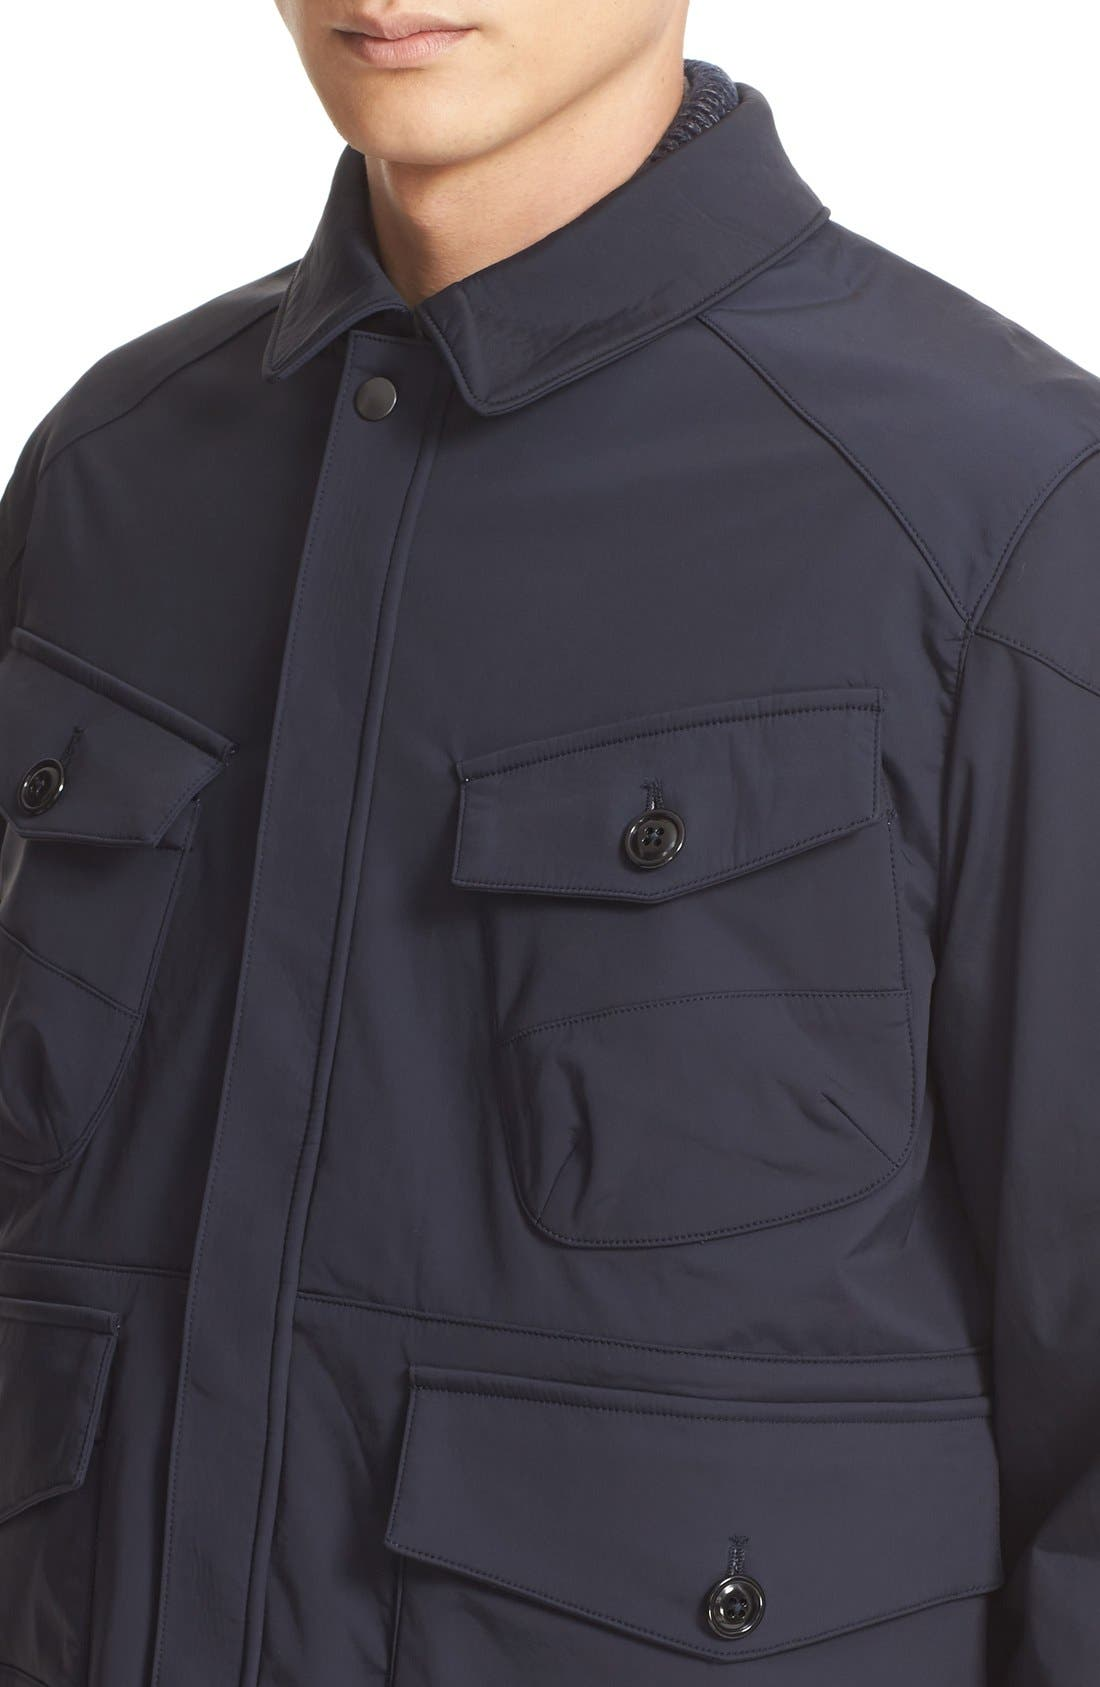 Field Jacket,                             Alternate thumbnail 5, color,                             410